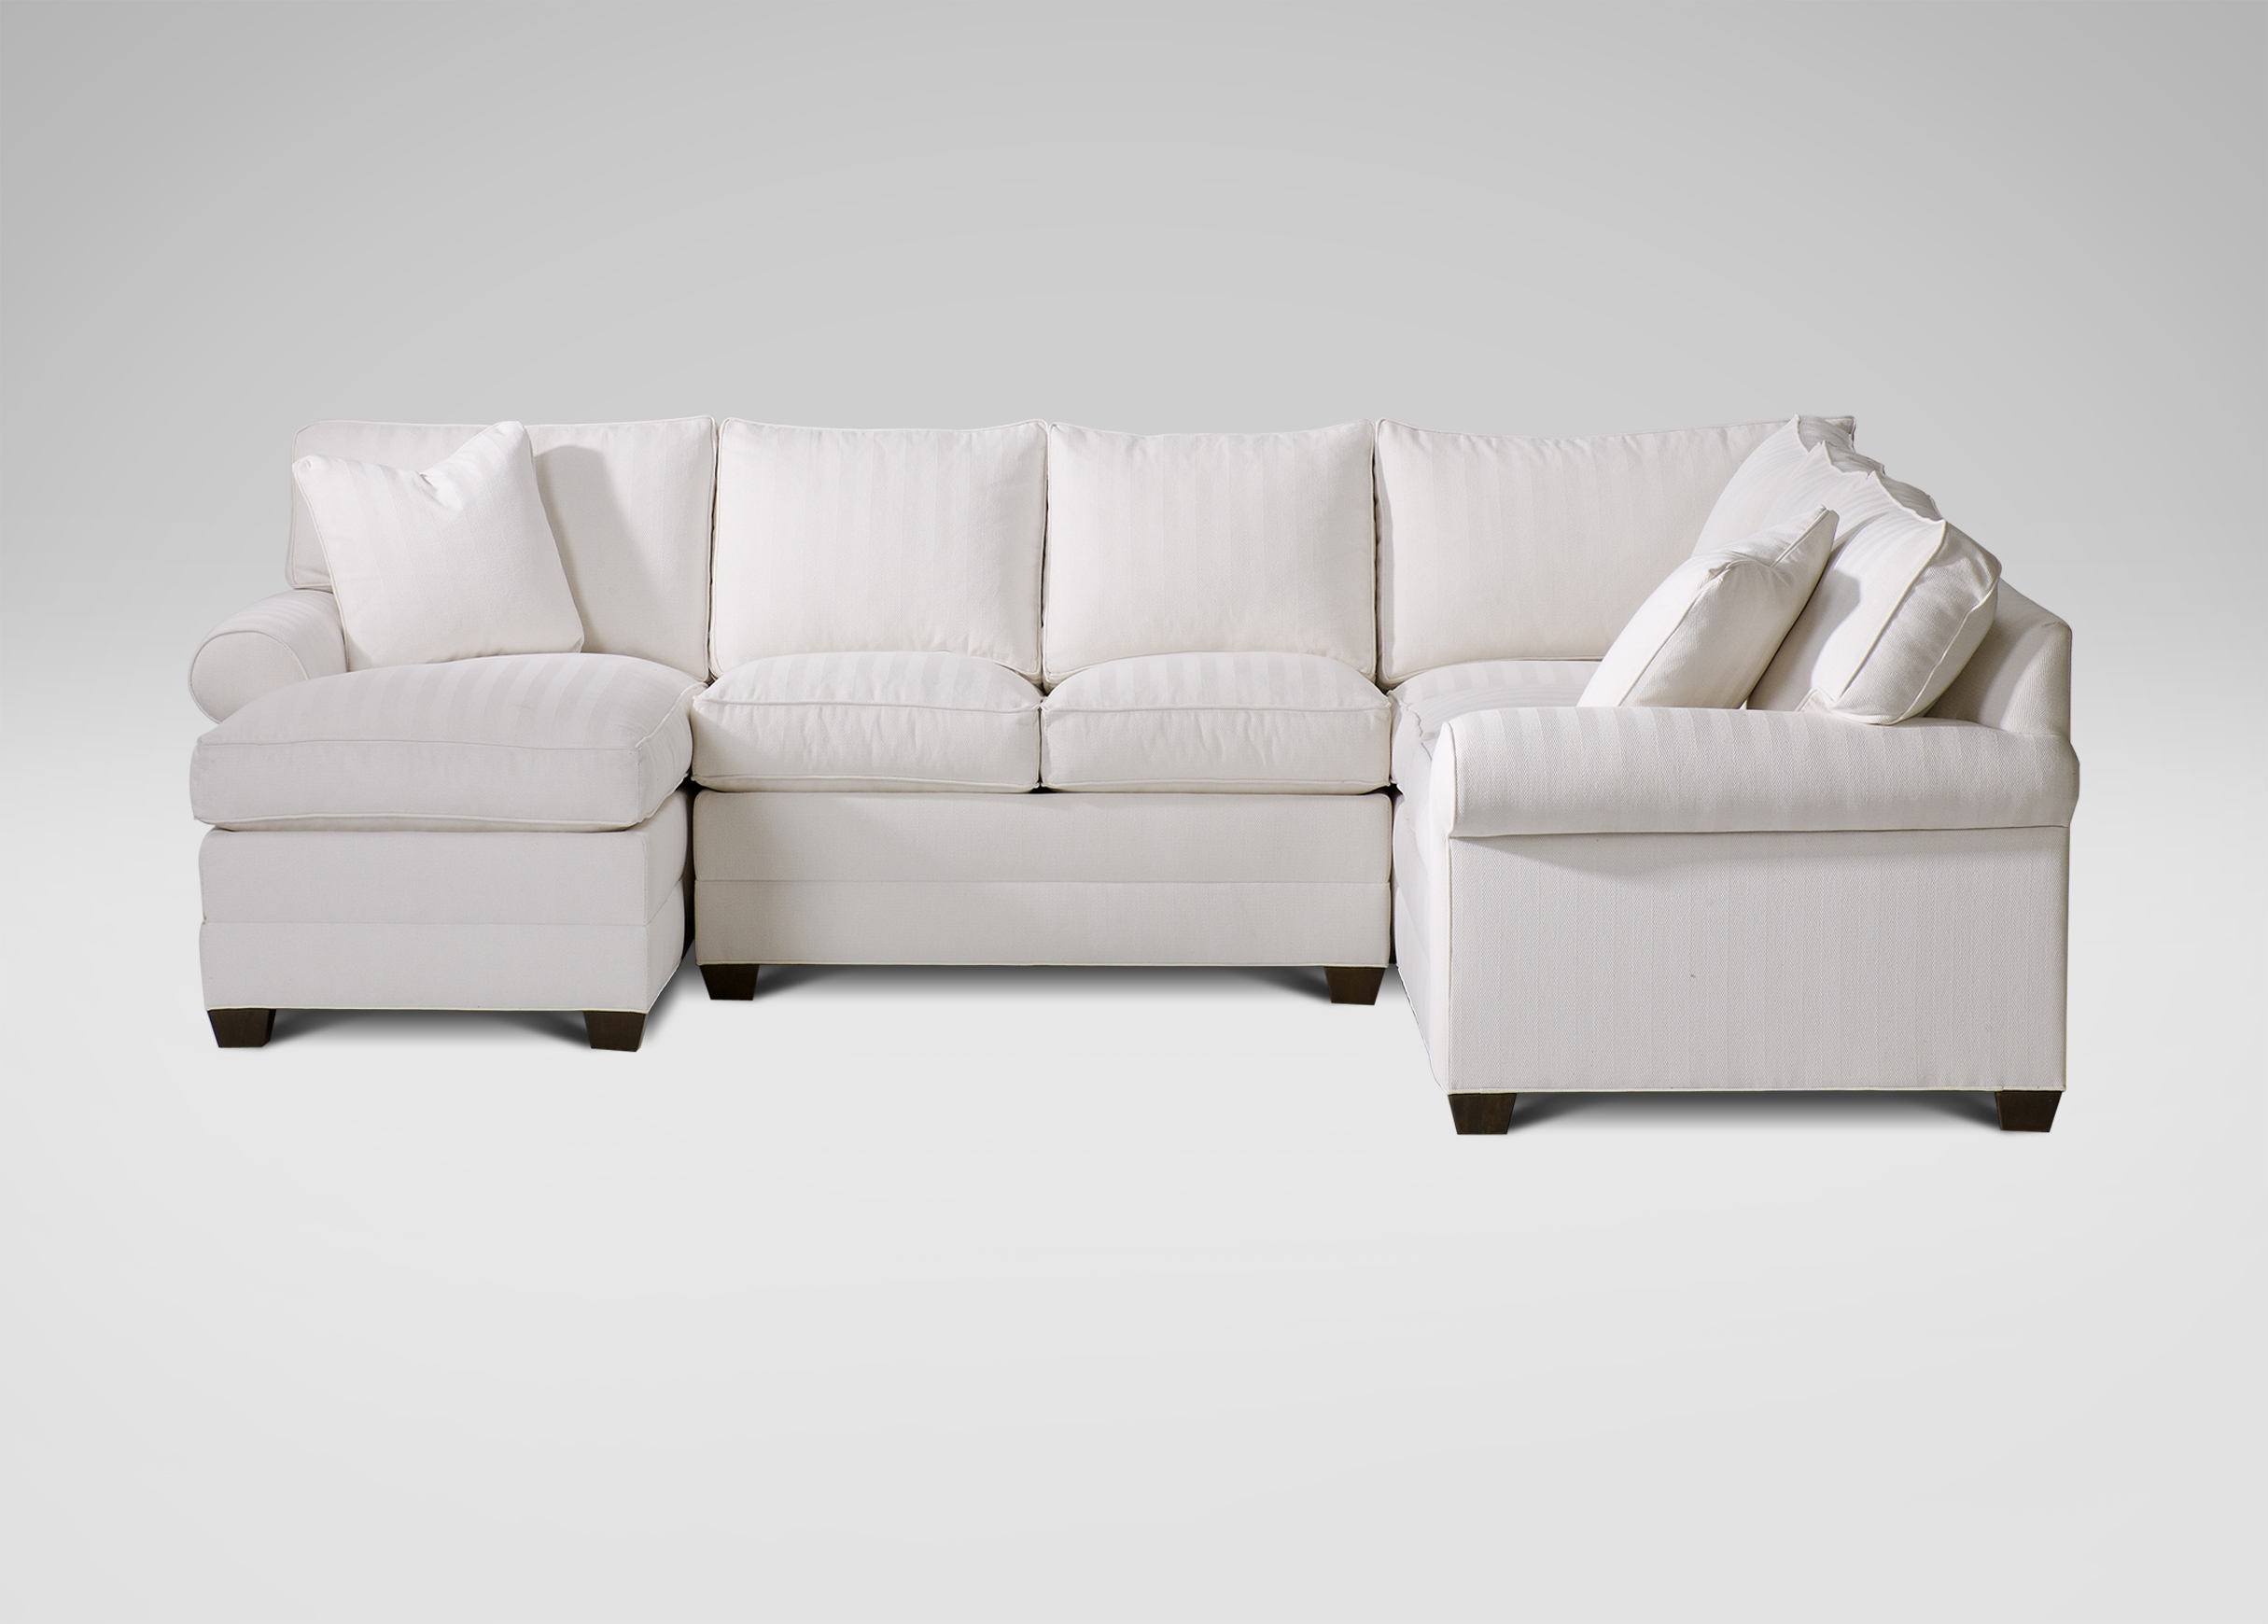 Furniture: Ethan Allen Sectional Sofas Bennett Sofa Reviews throughout Sectional Sofas At Ethan Allen